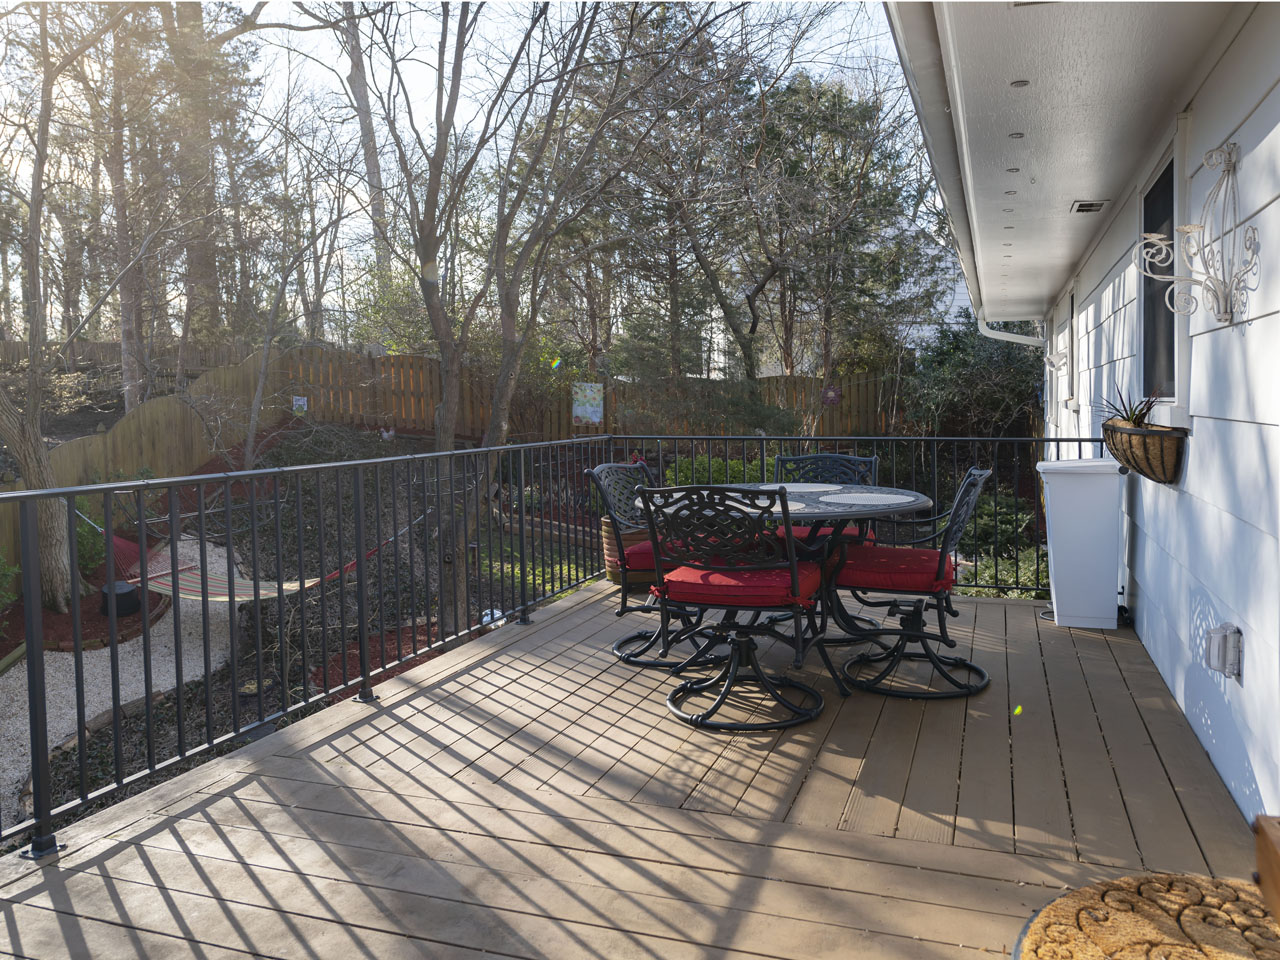 3341_deck-1  |   | Annandale Delaware Real Estate For Sale | MLS# Vafx991554  - Best of Northern Virginia